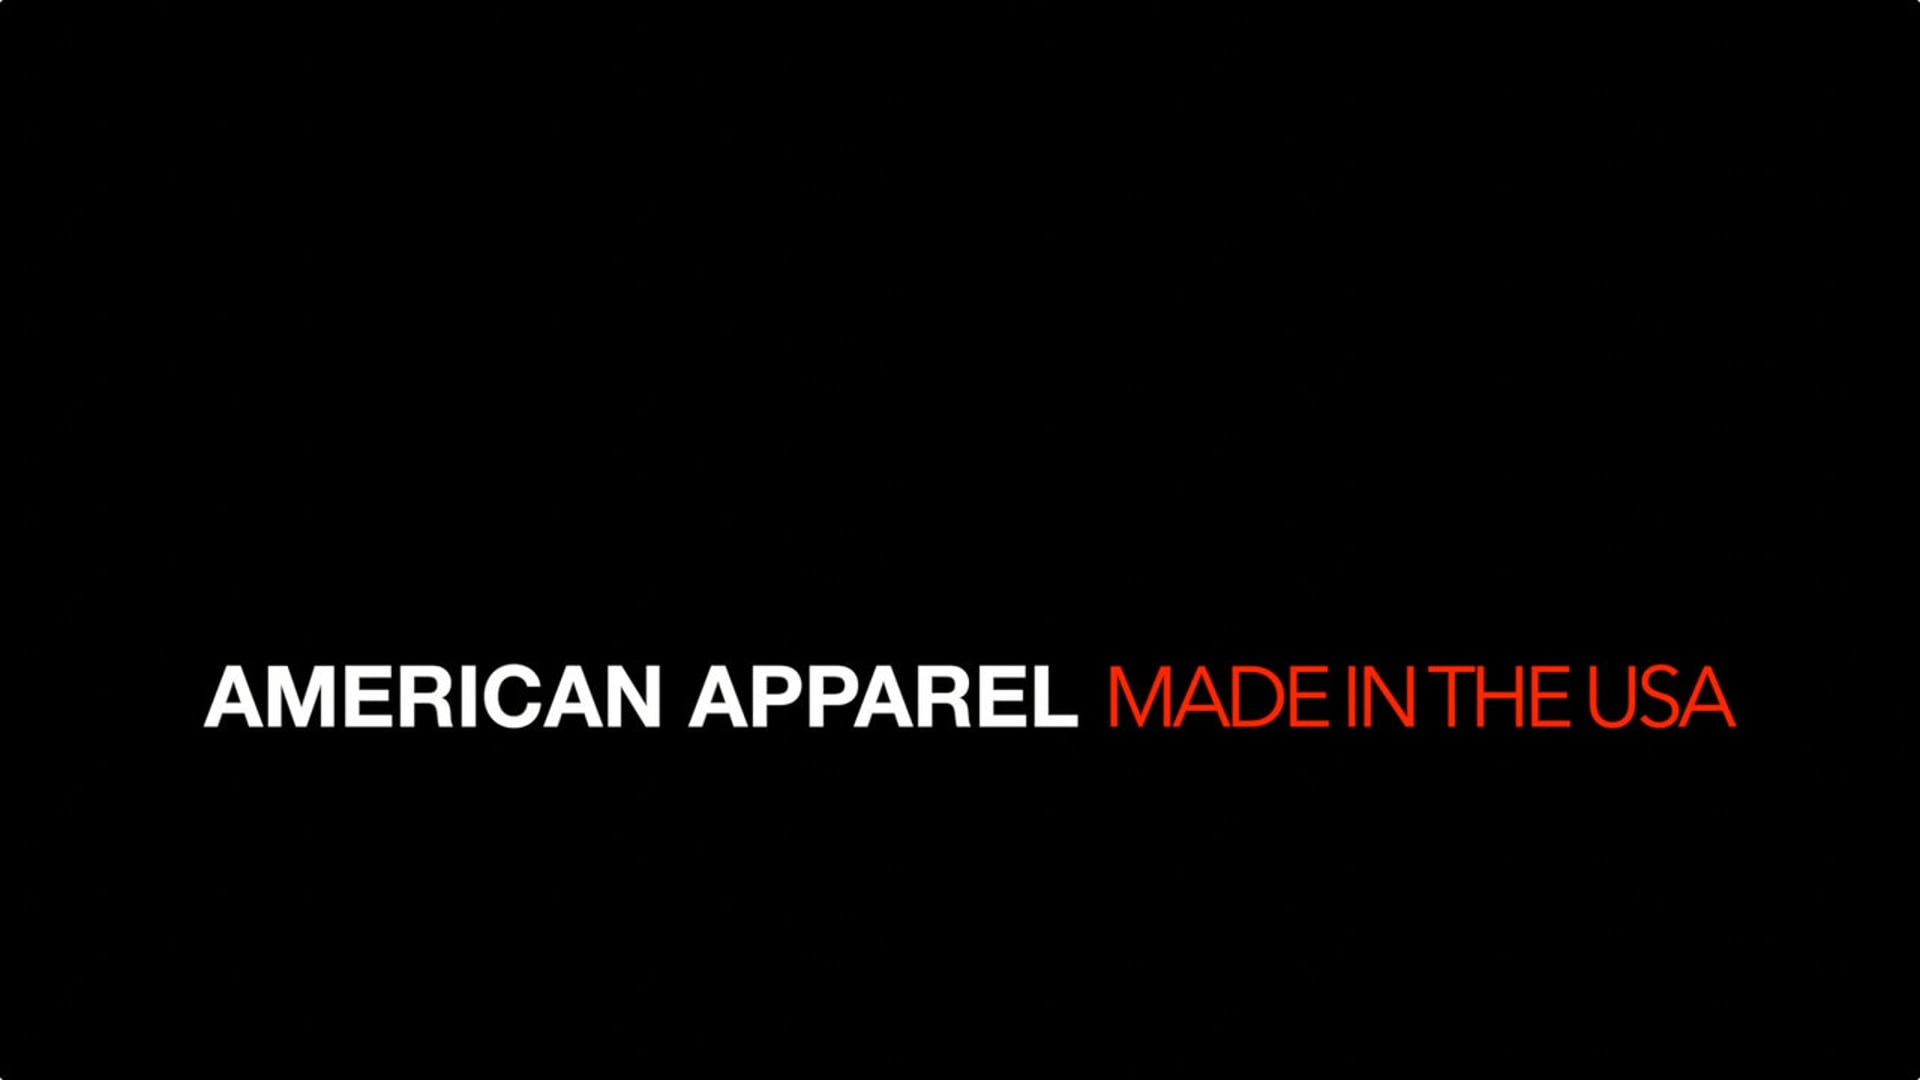 American Apparel | Branded Content